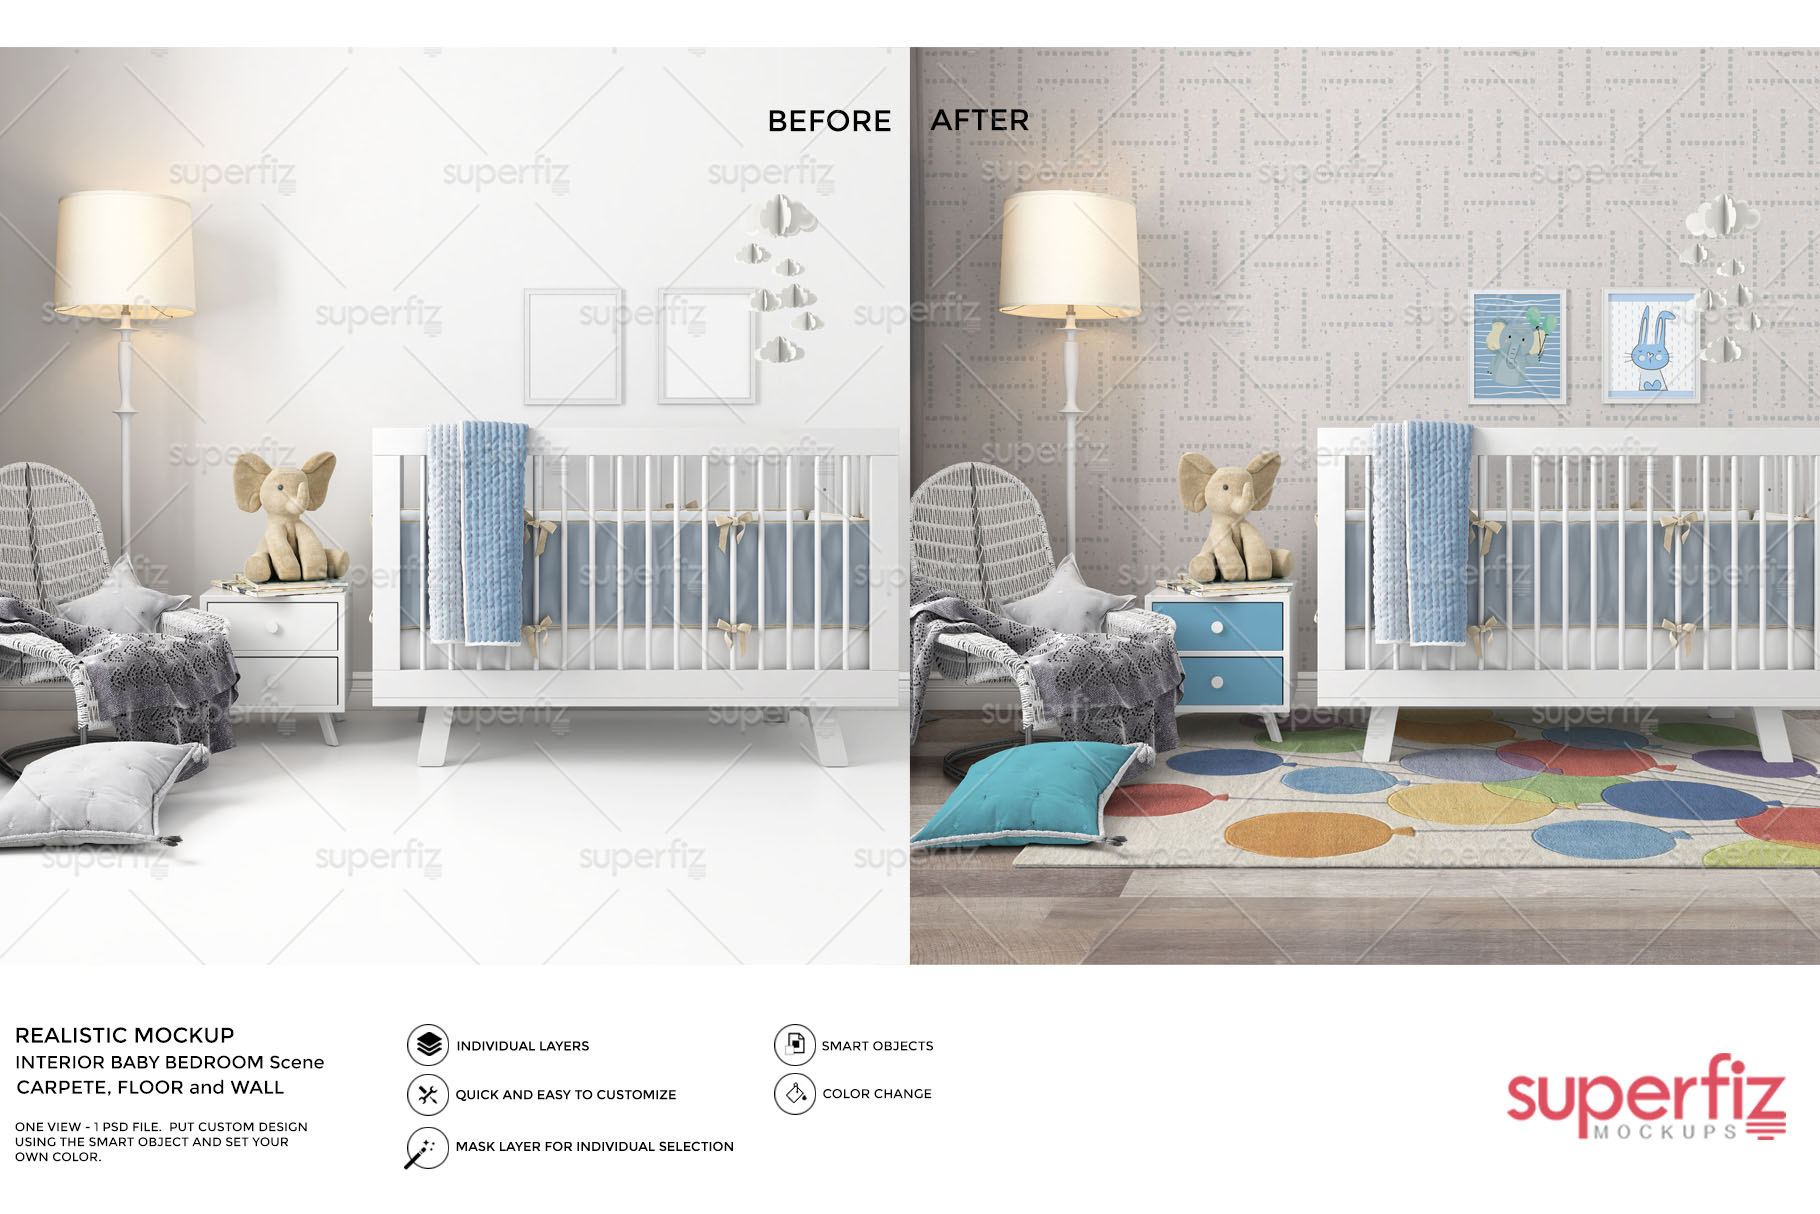 Wallpaper, floor, carpet and frame Mockup Baby Bedroom SM60 example image 1